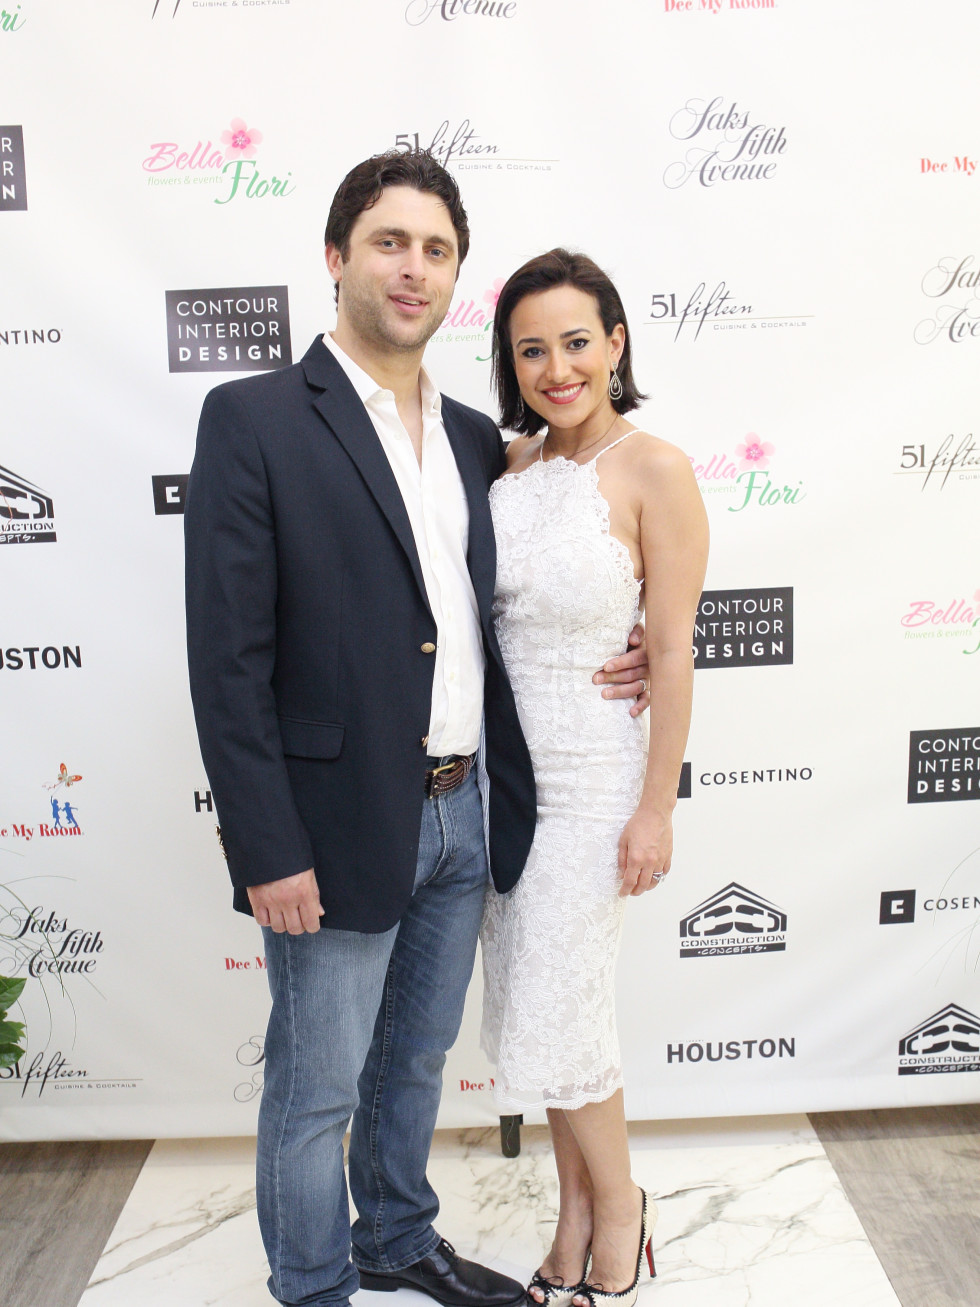 Houston, Carnaval De 51fifteen, May 2016, James Khreibani, Maryam Asfari